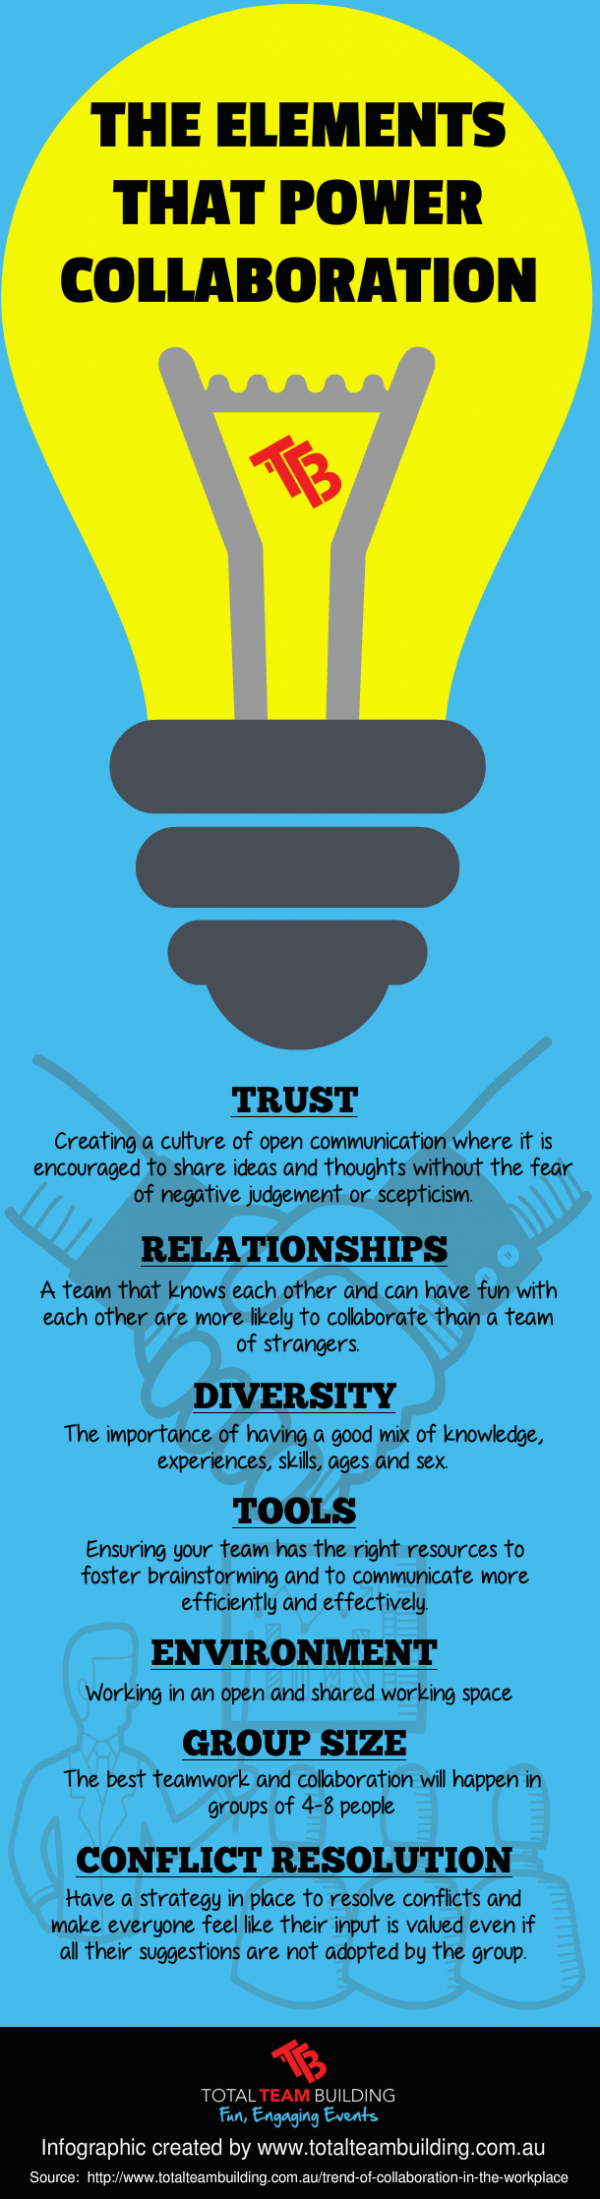 The Elements That Power Collaboration